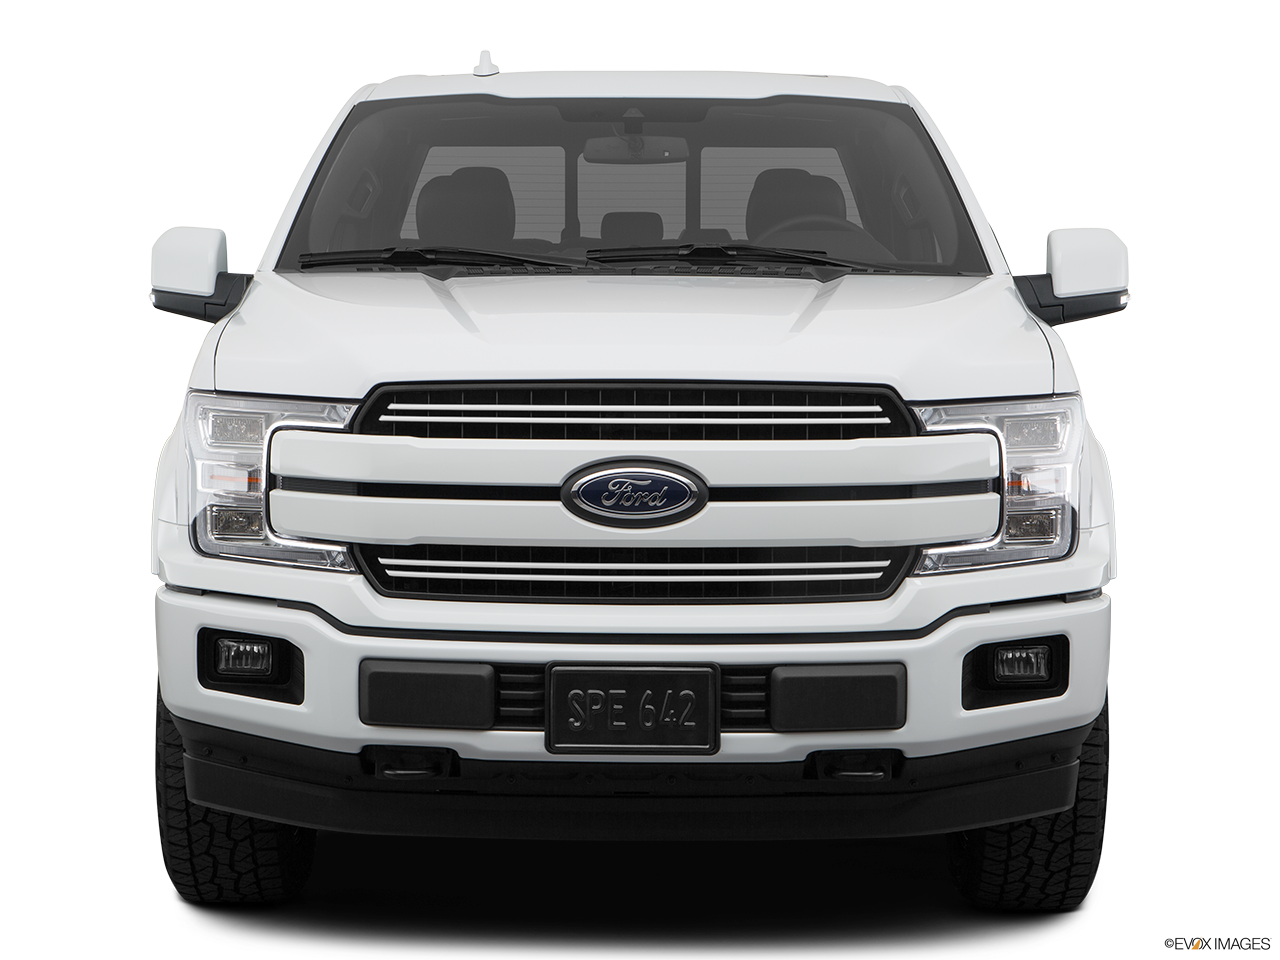 2020 Ford F-150 photo